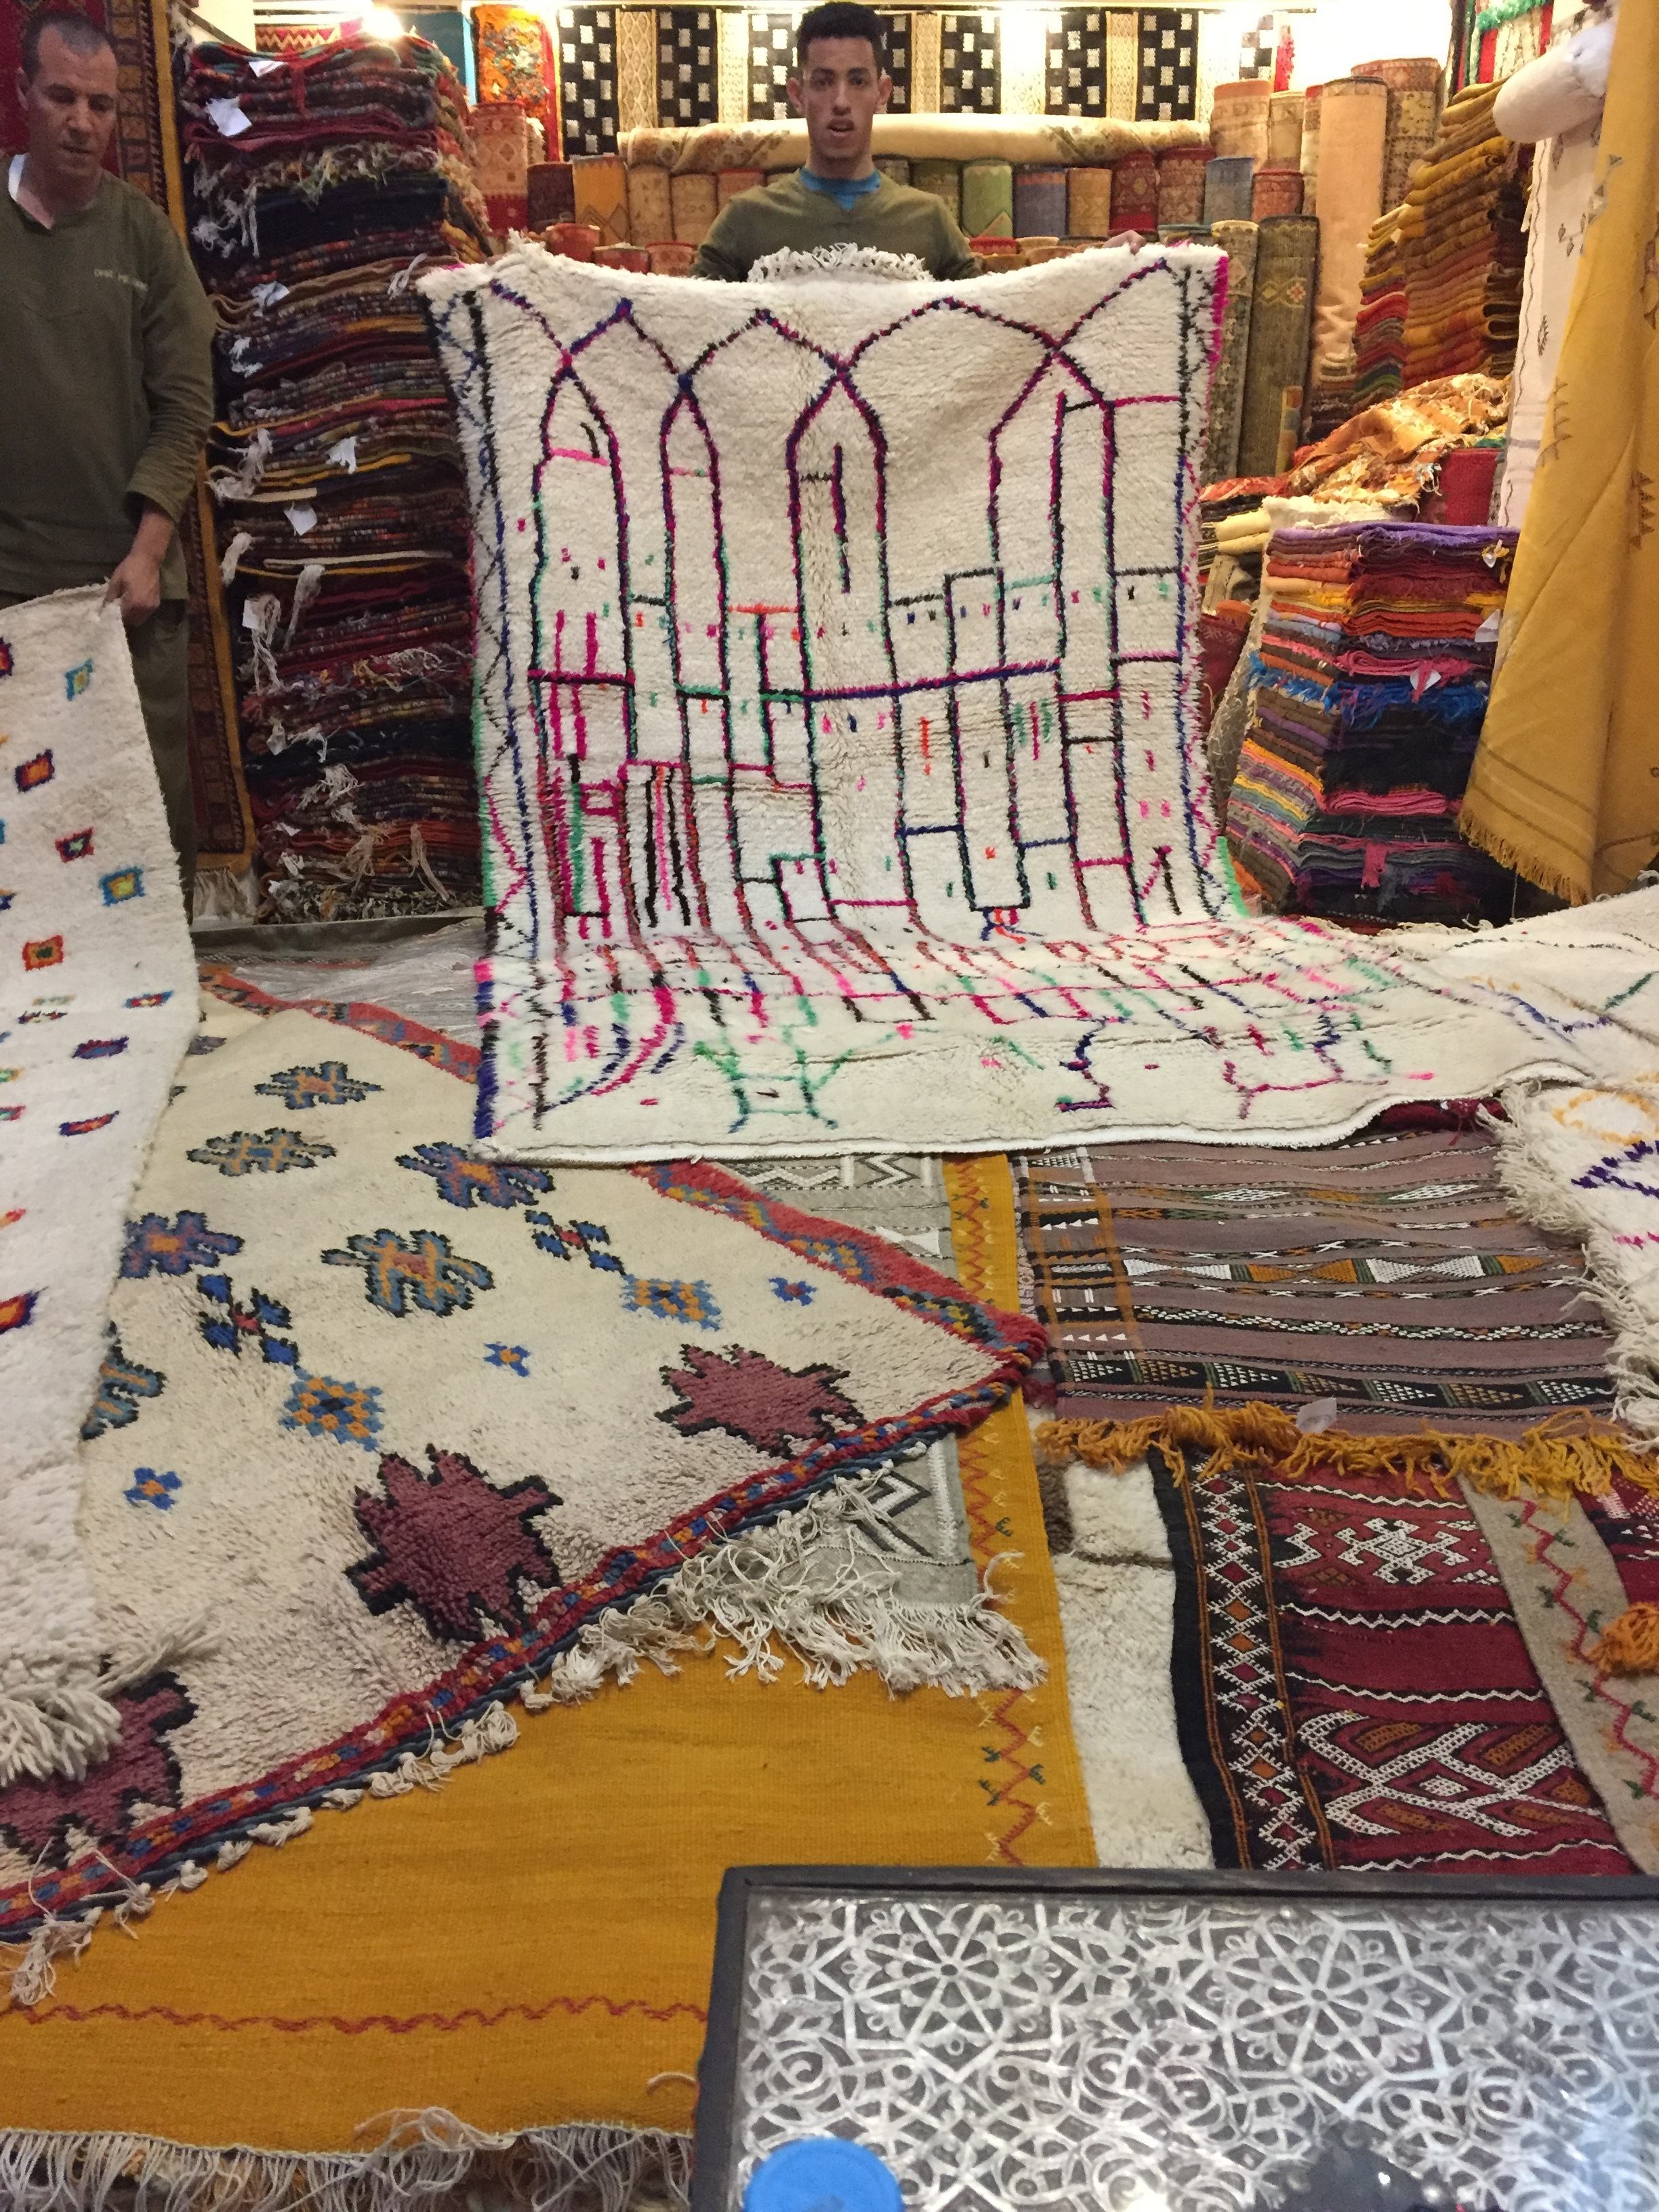 We spent over 4 hours looking at hundreds of rugs, only choosing a specific few to bring home.